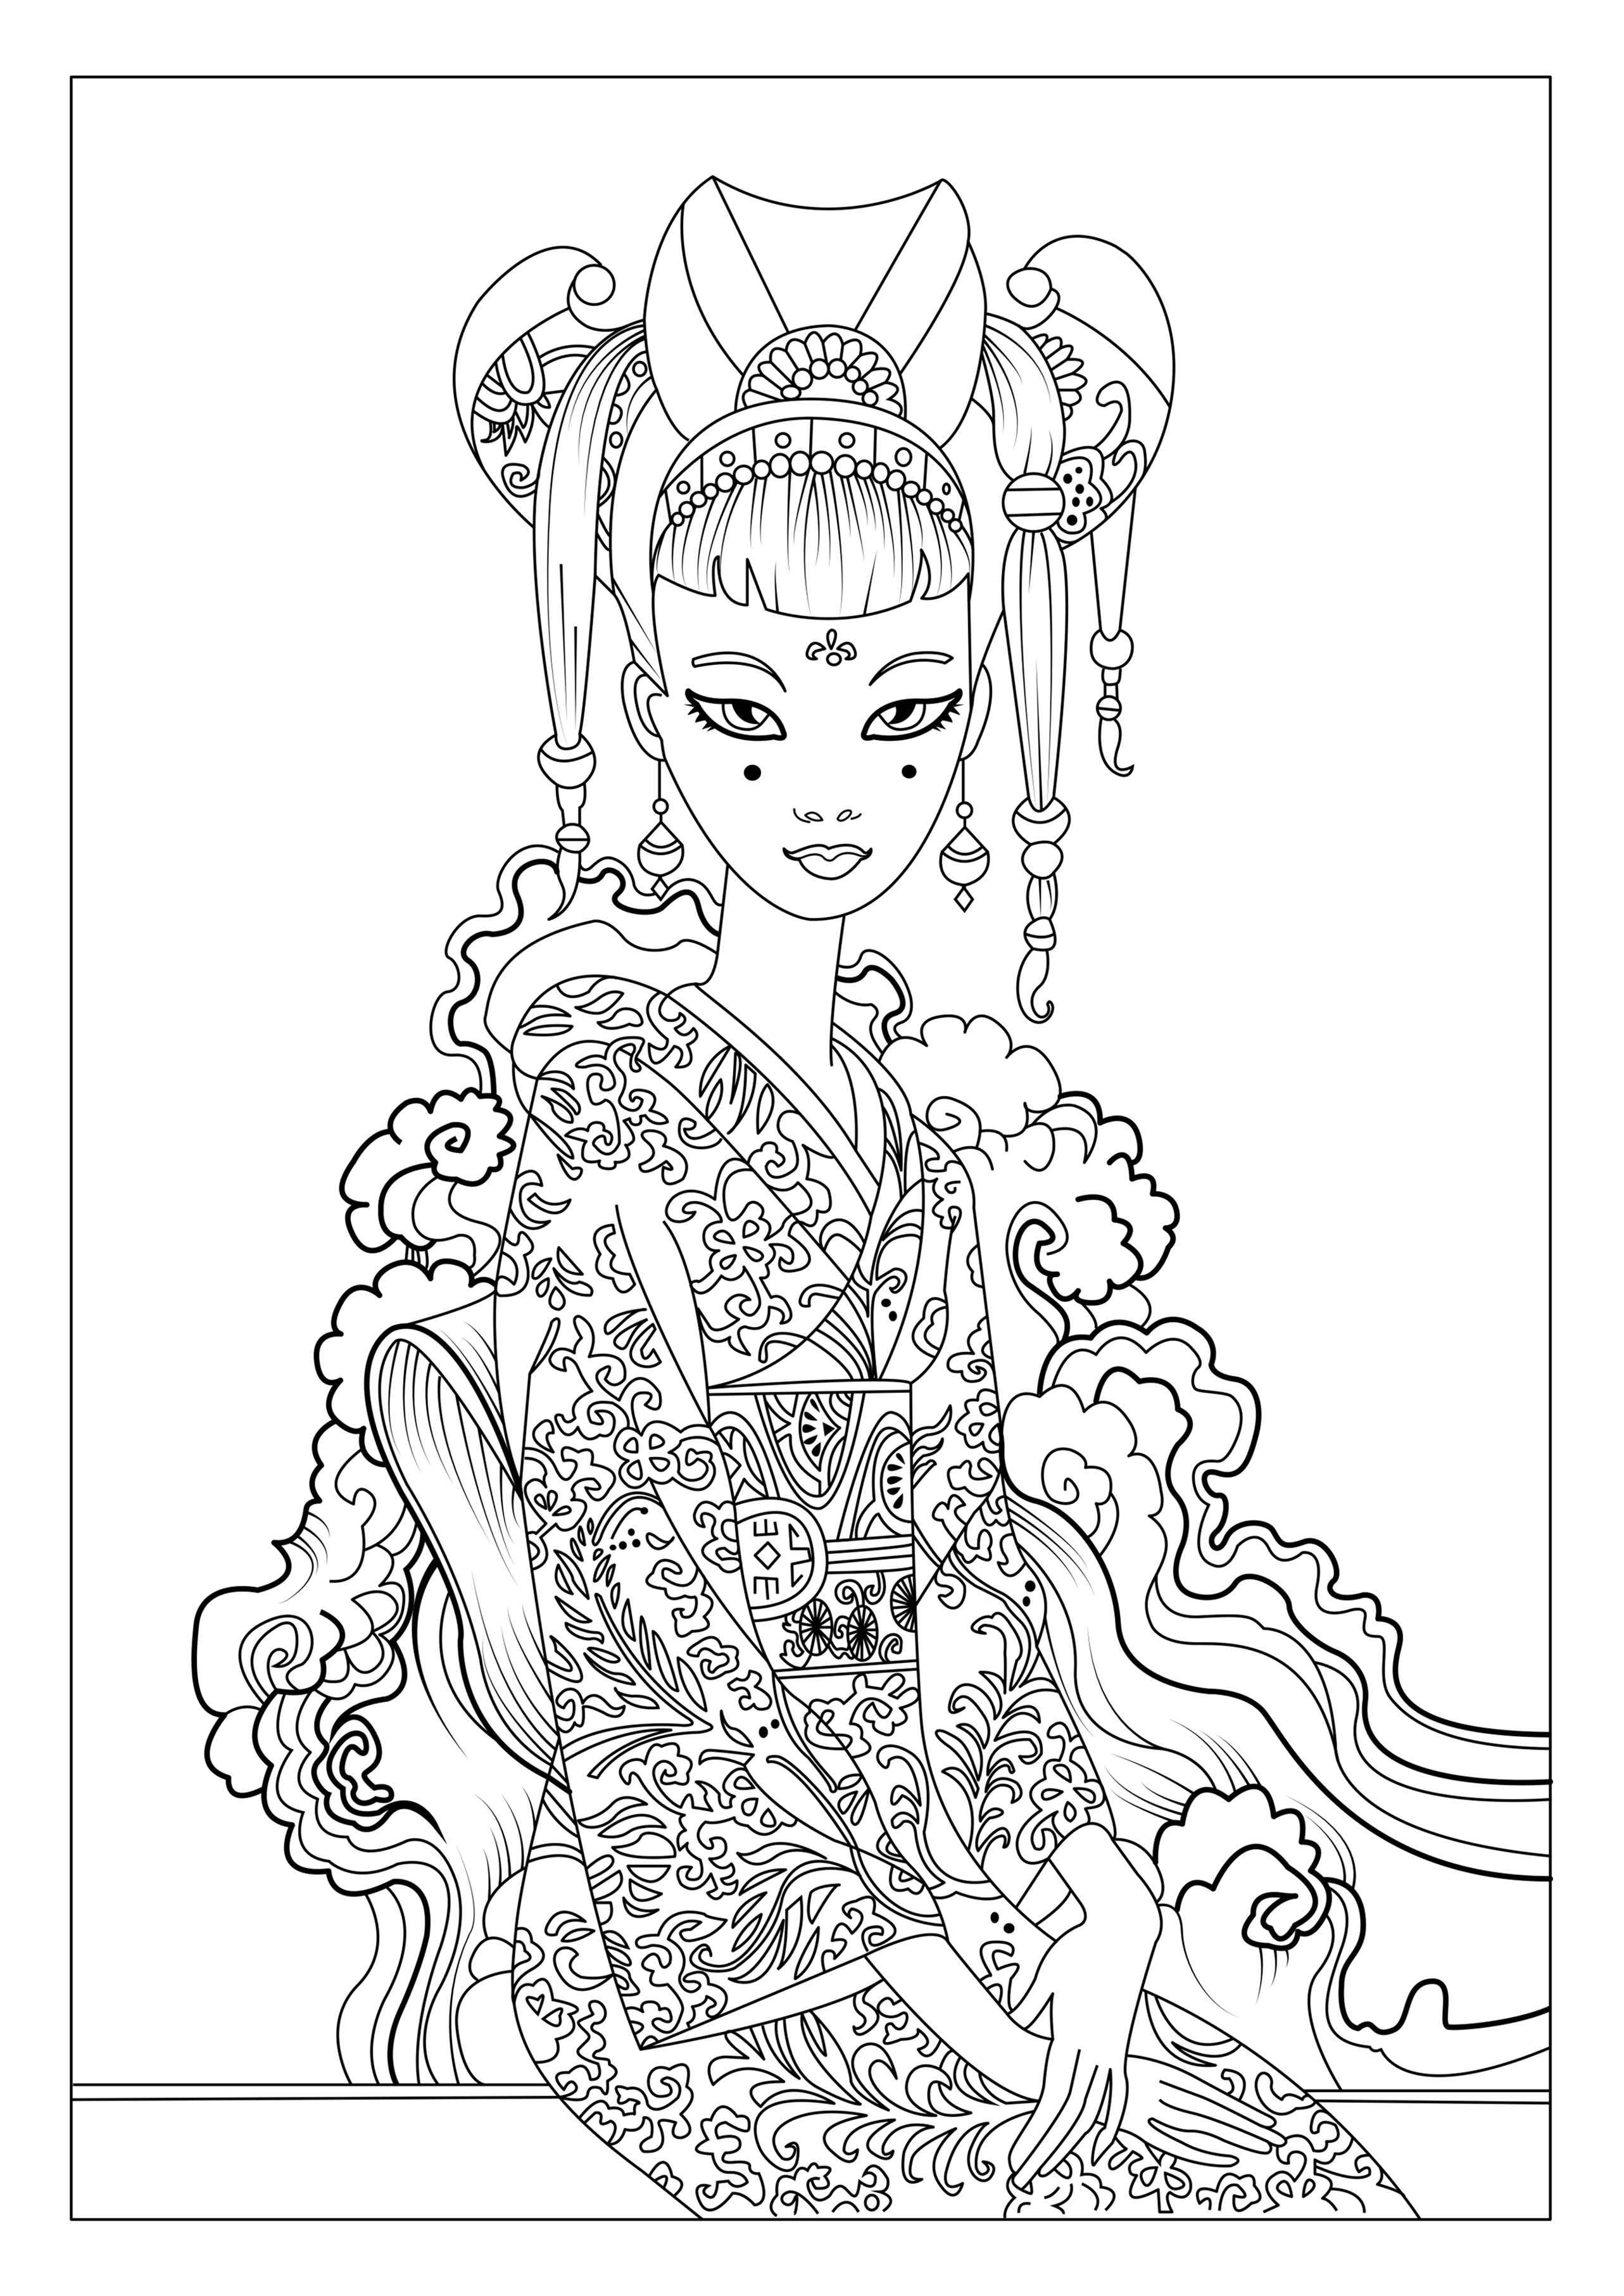 This Is Our Coloring Page With A Japan Woman By Celinefrom The Gallery Japanartist Celine